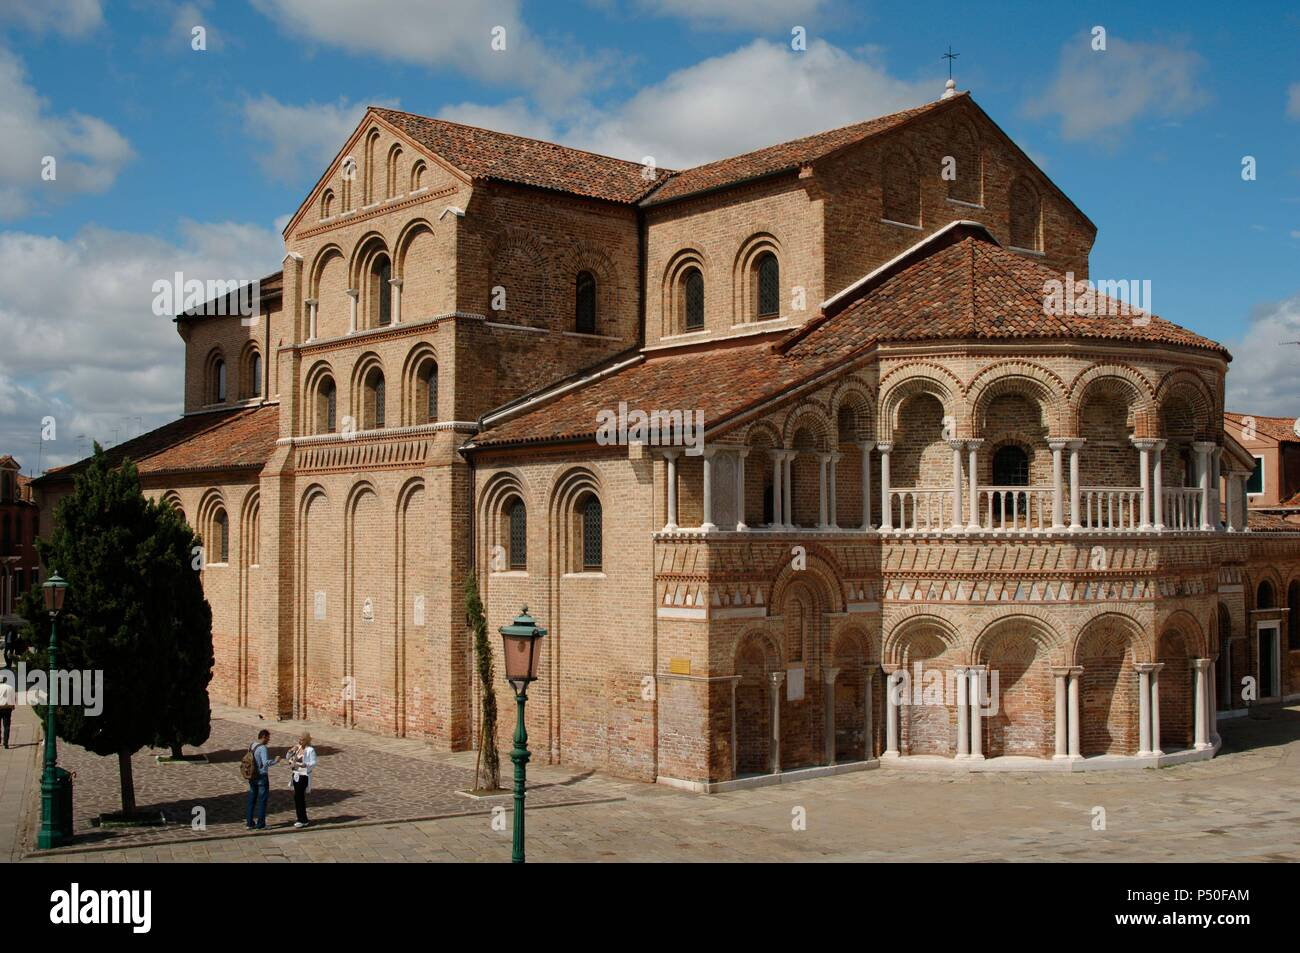 7th Century 9th Century High Resolution Stock Photography and ...